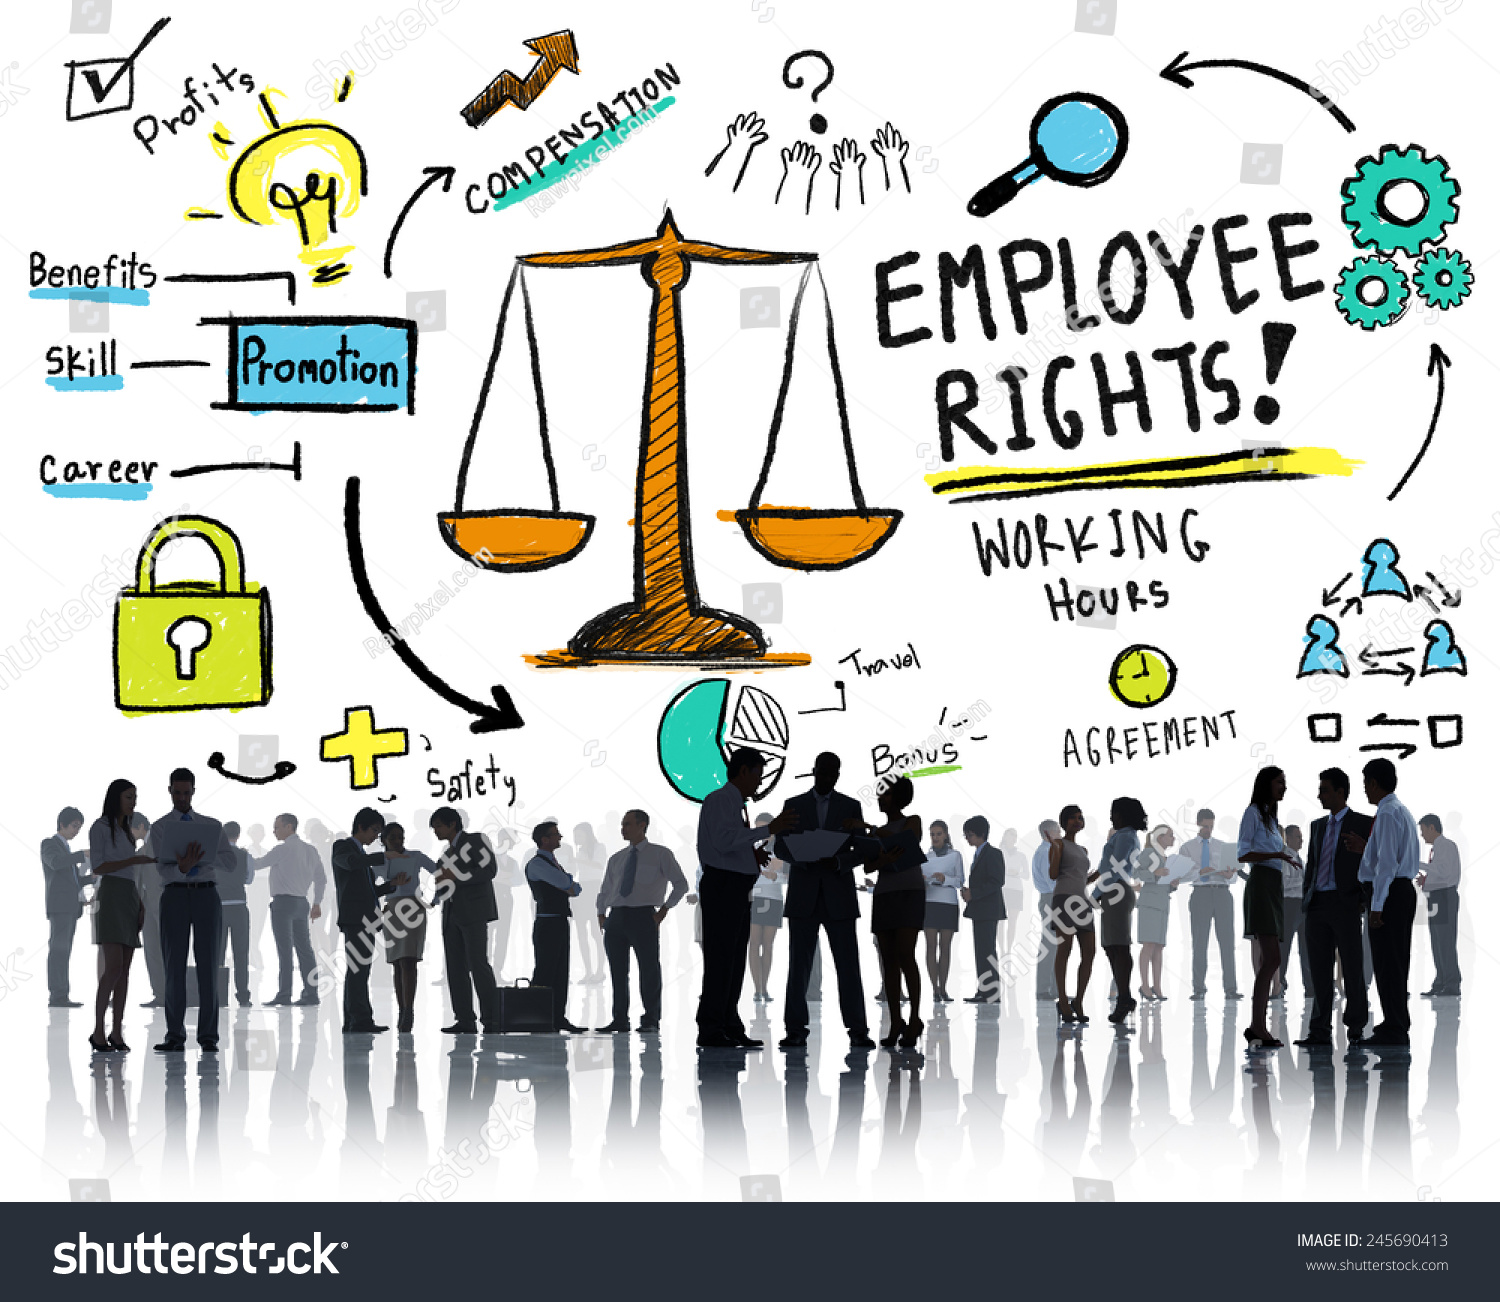 employment rights About nera nera's mission is to achieve a national culture of employment rights compliance guide to employment rights this guide is intended to give general guidance to employees.